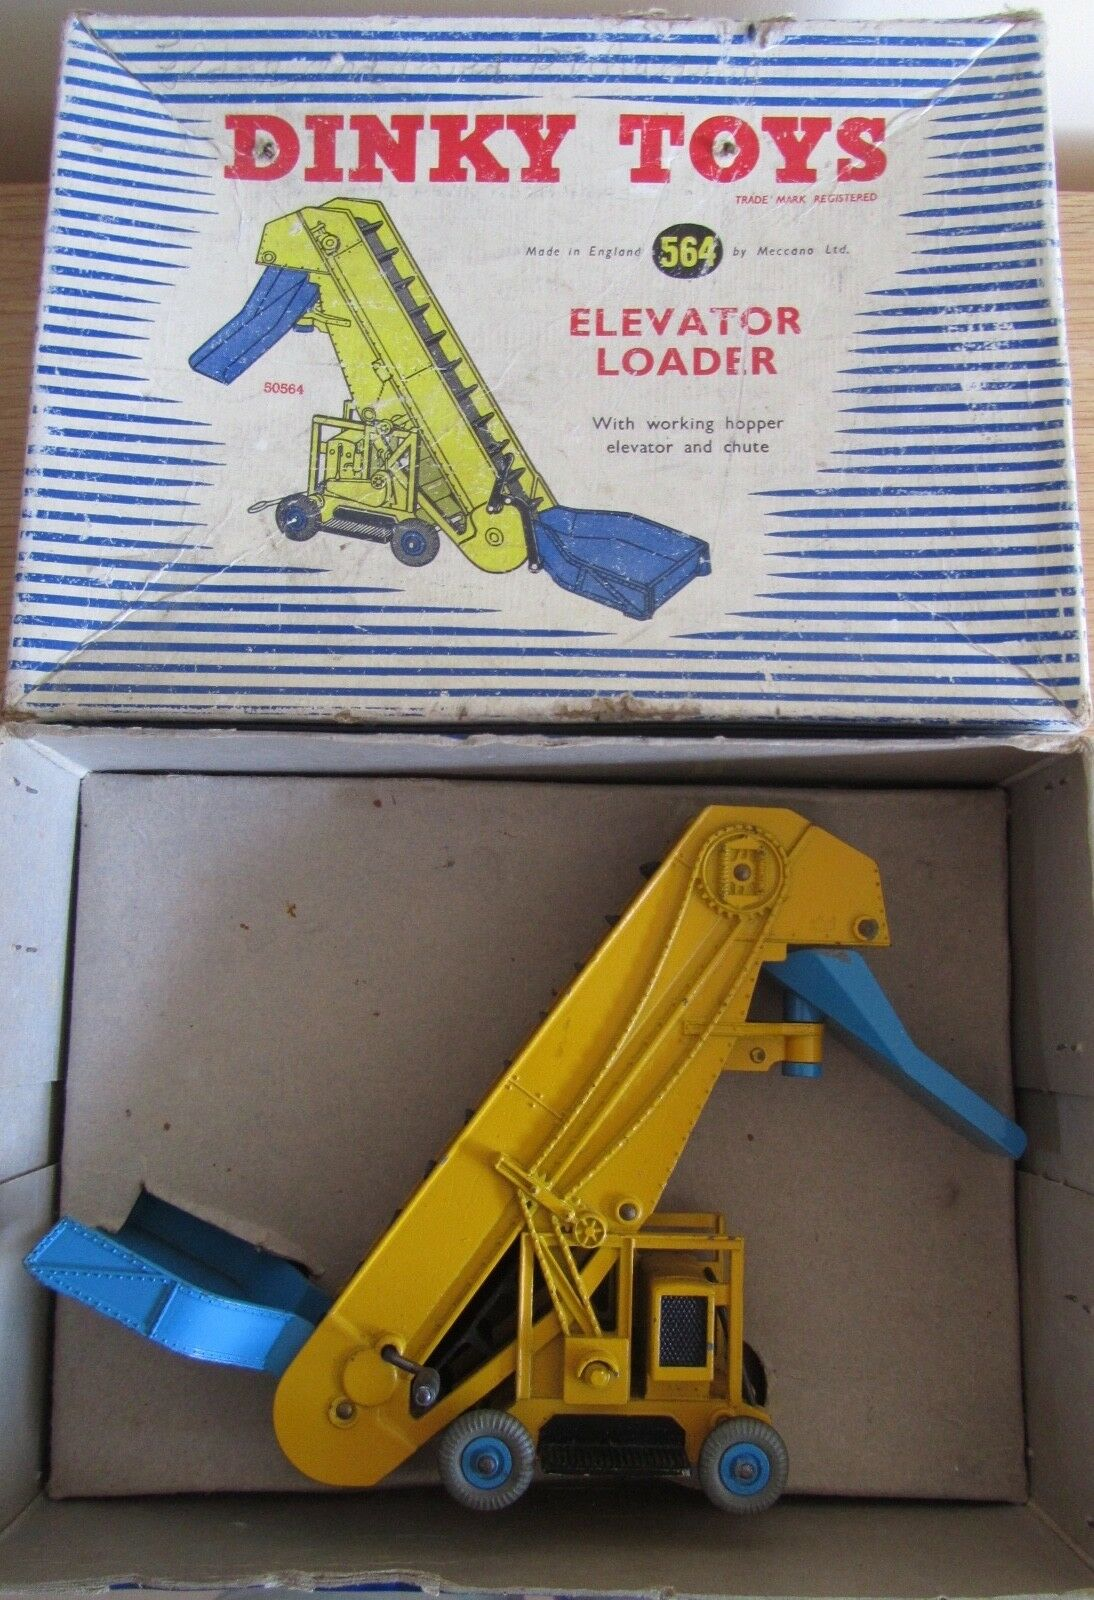 Dinky Toys 564 Elevator Loader vintage in original box good used condition